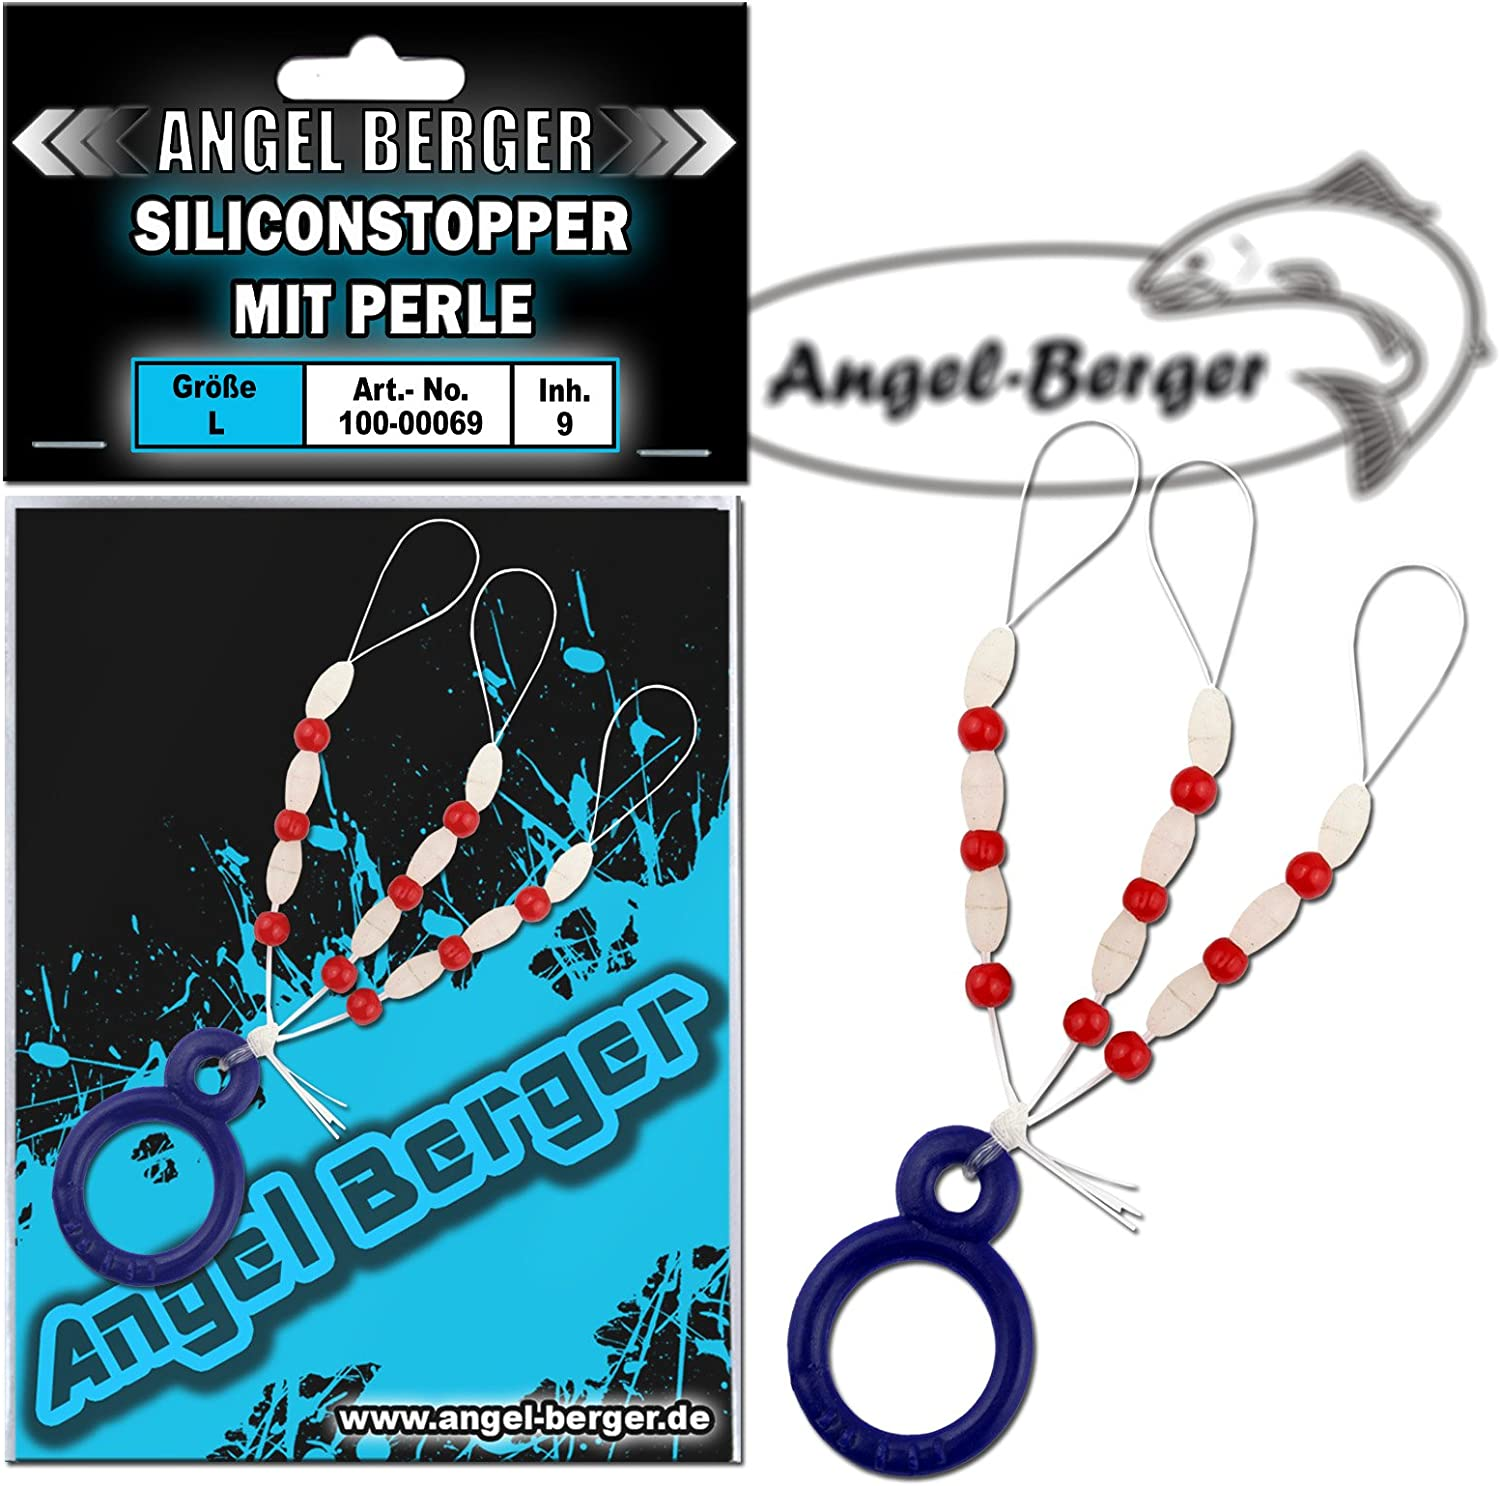 Angel-Berger Silicon Stopper mit Perle